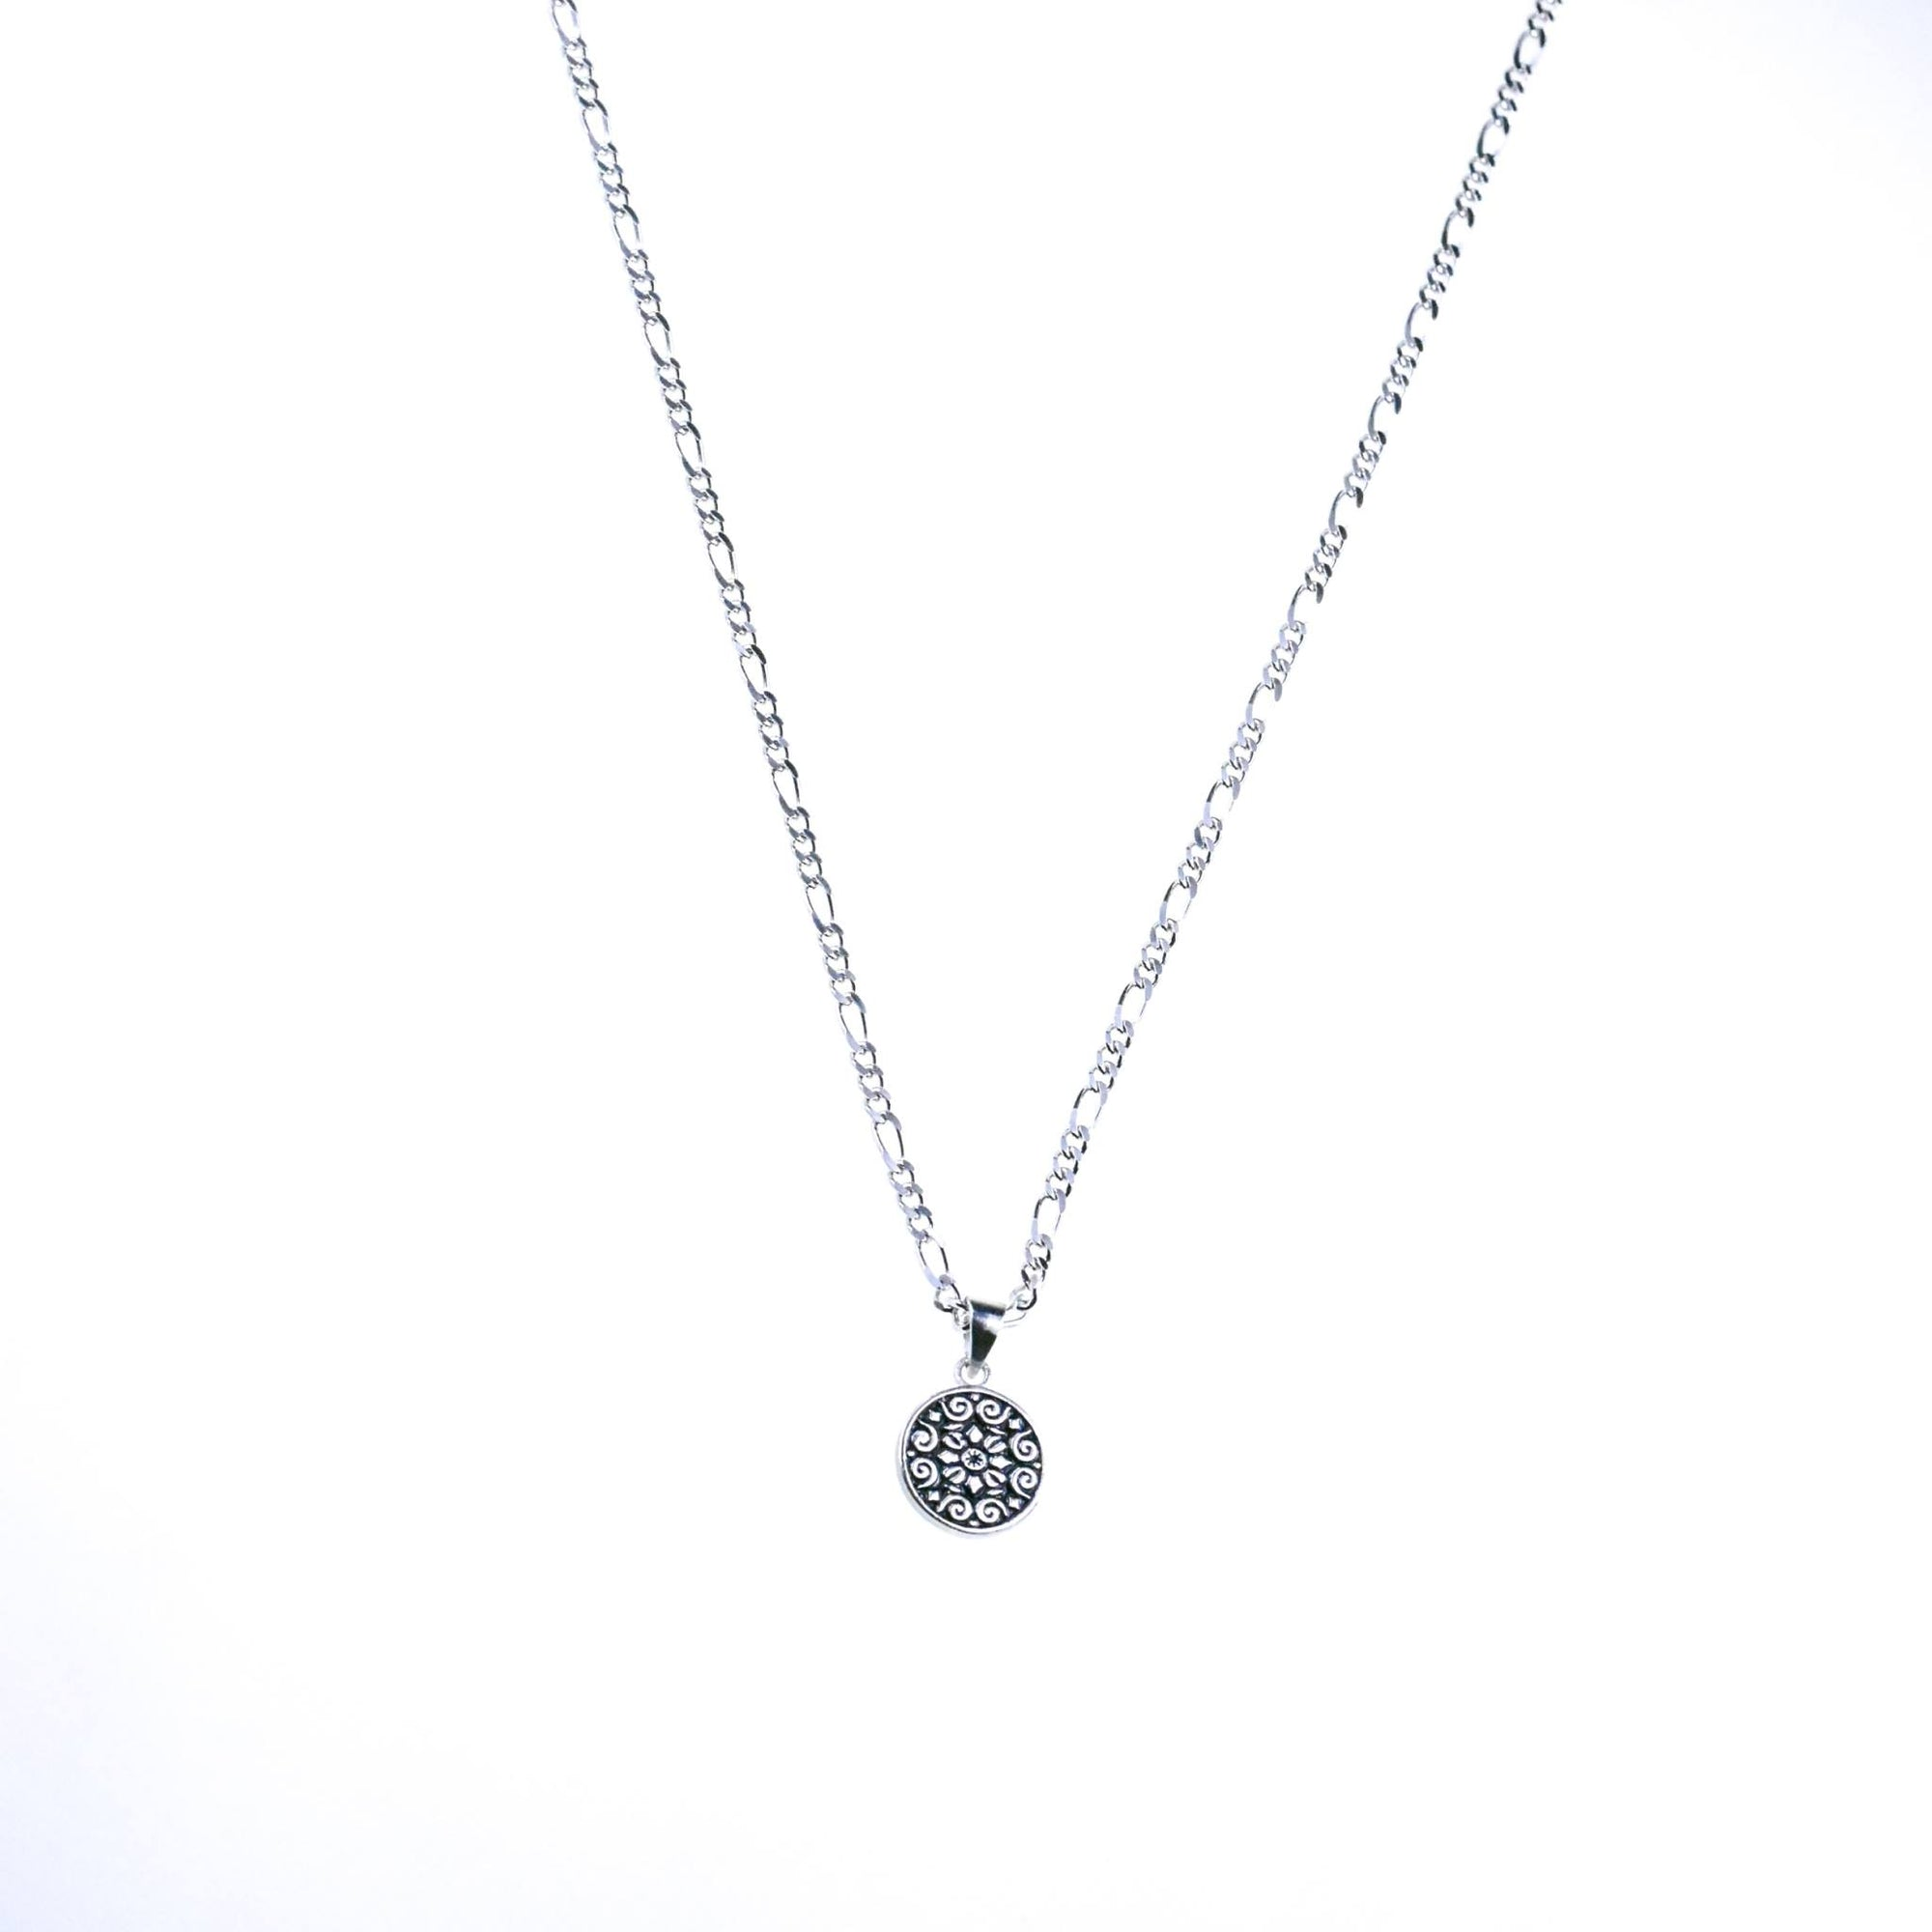 Silver Figaro Necklace with Pendant